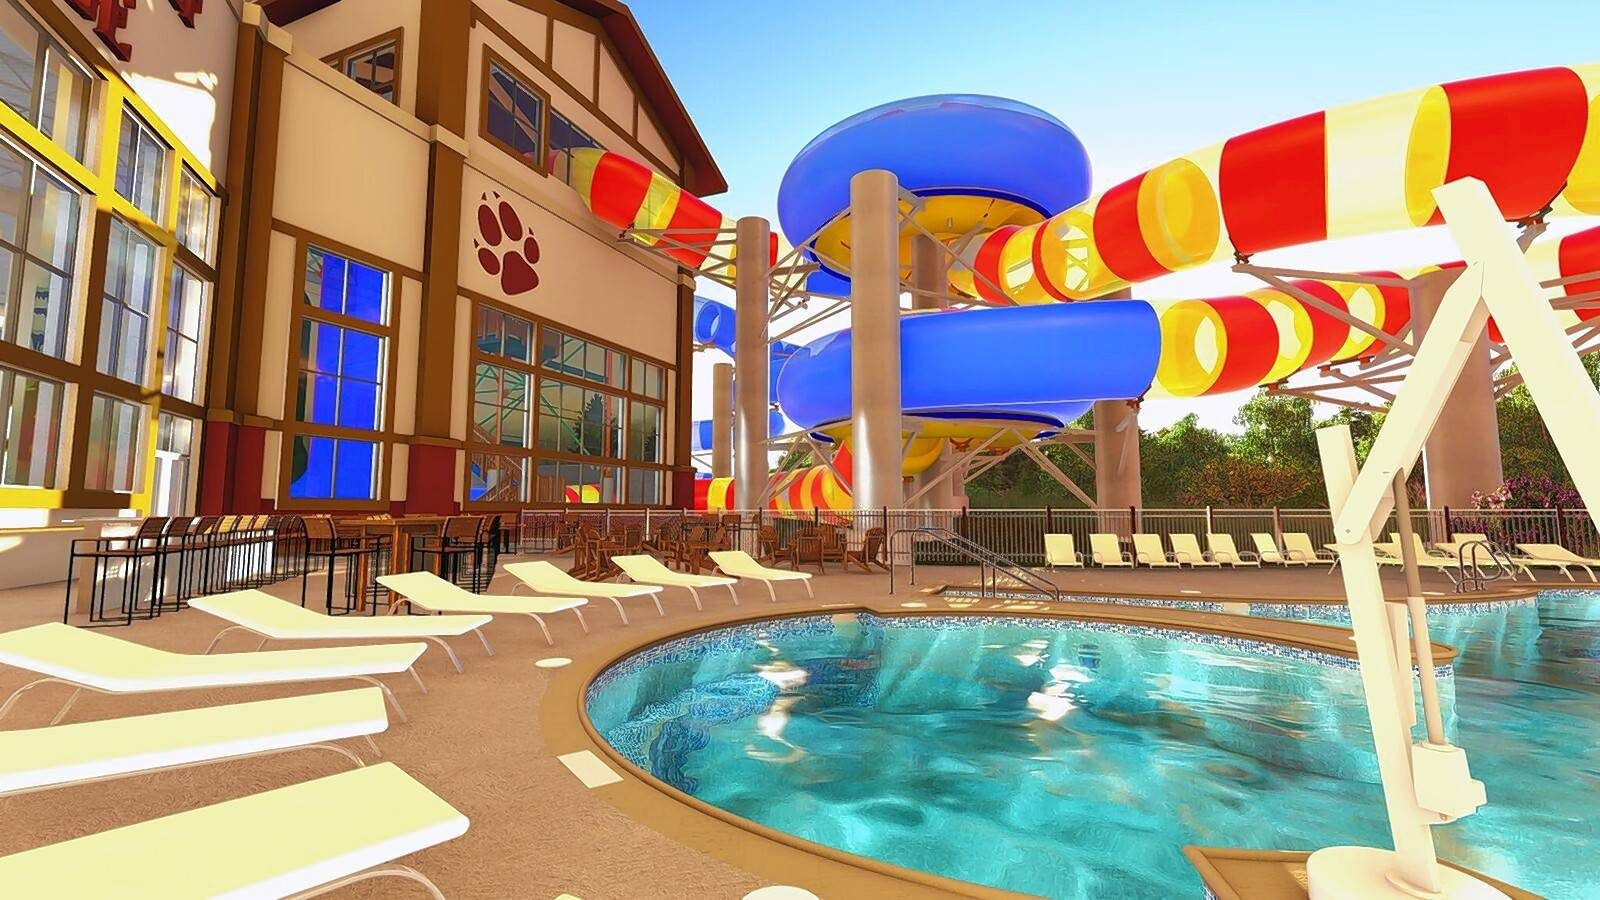 Great Wolf Lodge has revealed what its new Double Whirlwind waterslide will look like when the resort opens in July.